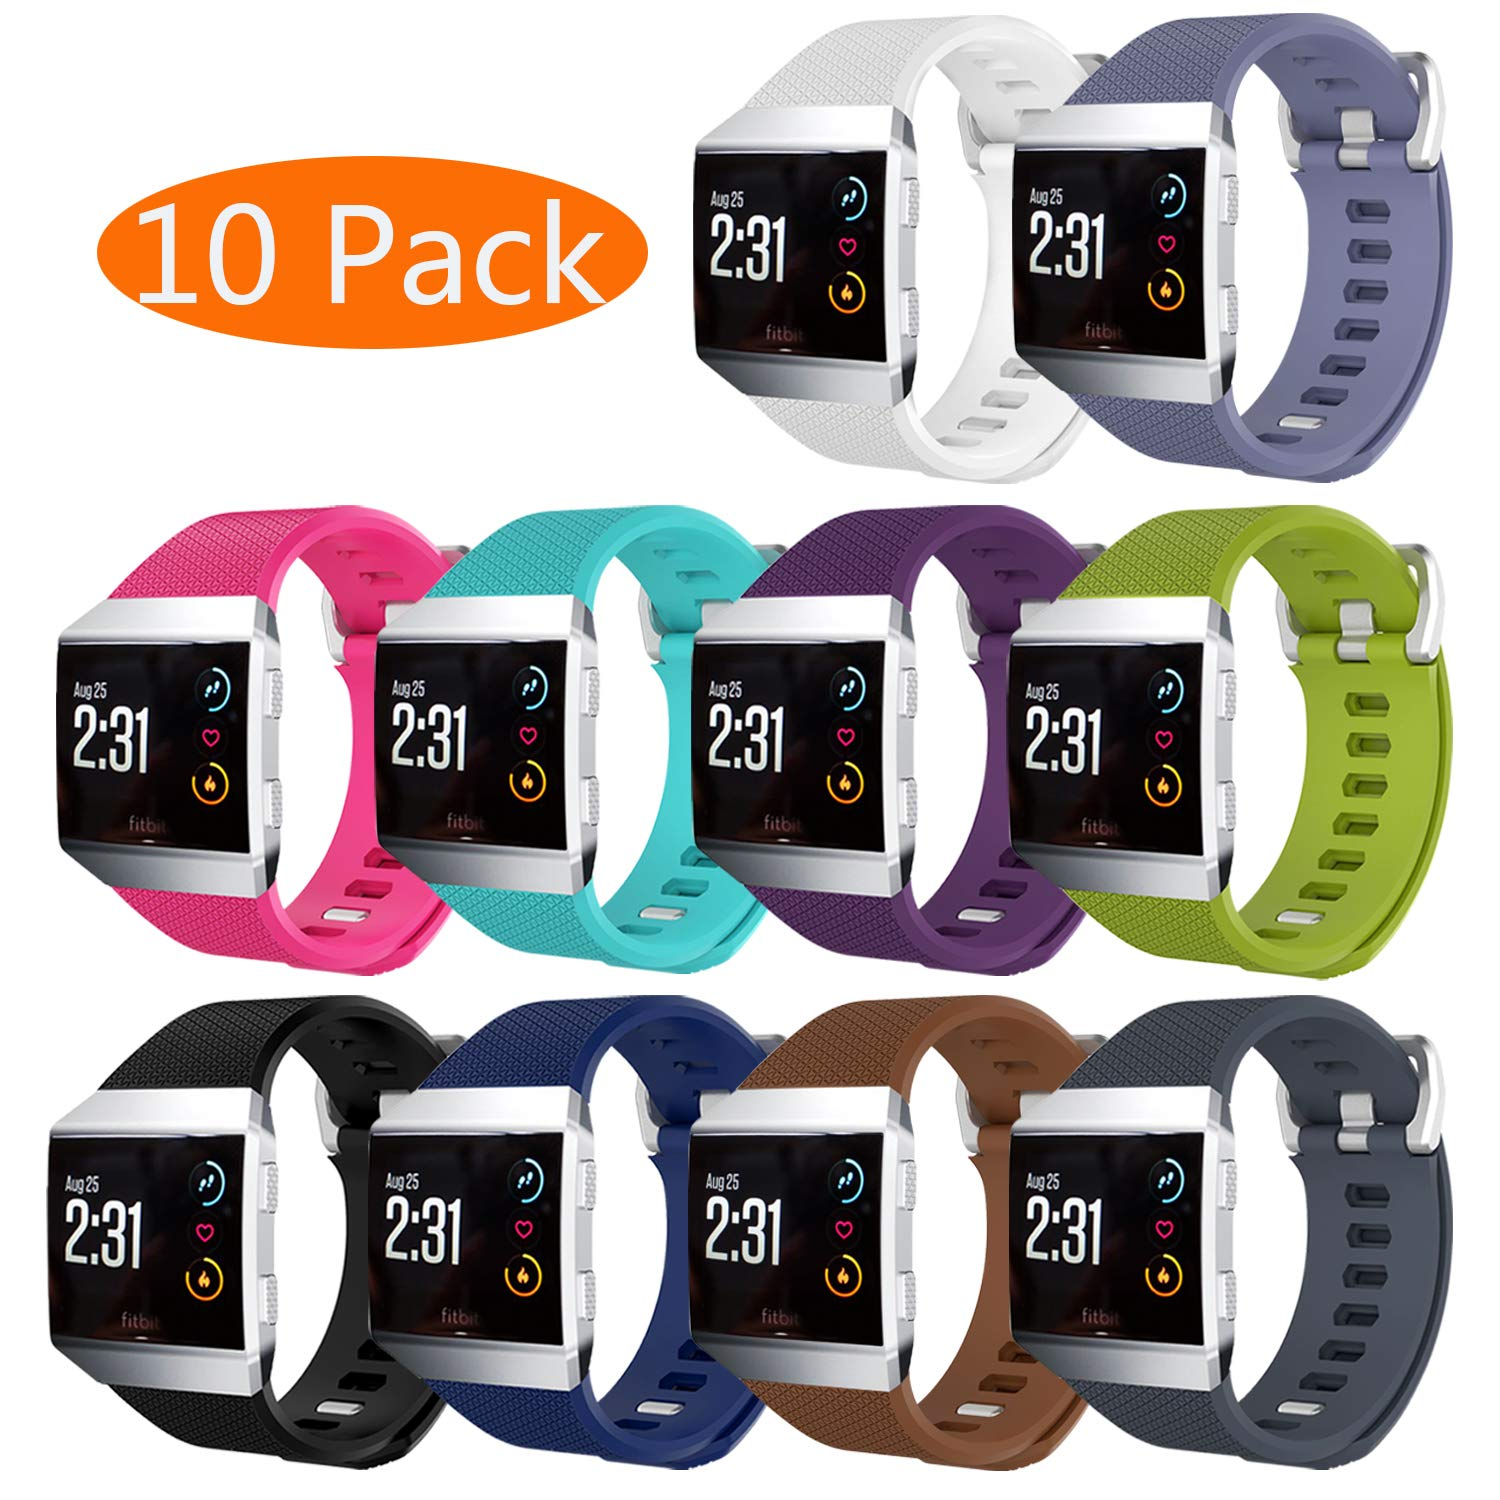 12e44d60ecc49 KingAcc Fitbit Ionic Strap, Soft Accessory Replacement Bands Straps for Fitbit  Ionic, With Metal Buckle Fitness Sport Wristband Band Women Men Large Small  ...